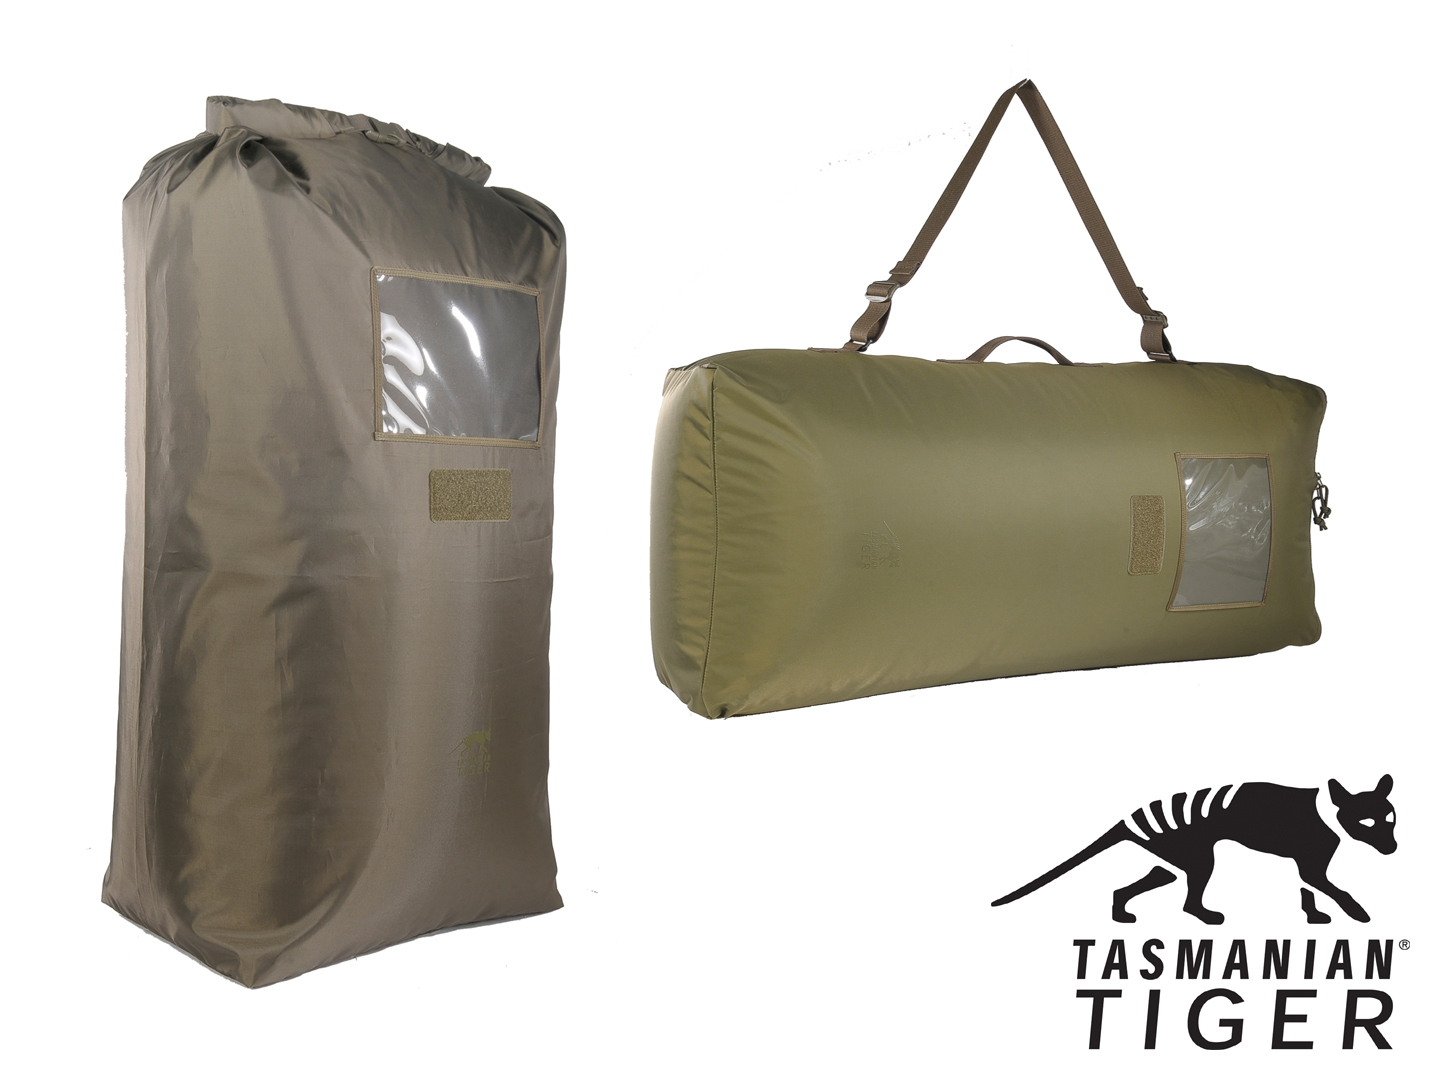 Tasmanian Tiger® has Your Backpack Covered